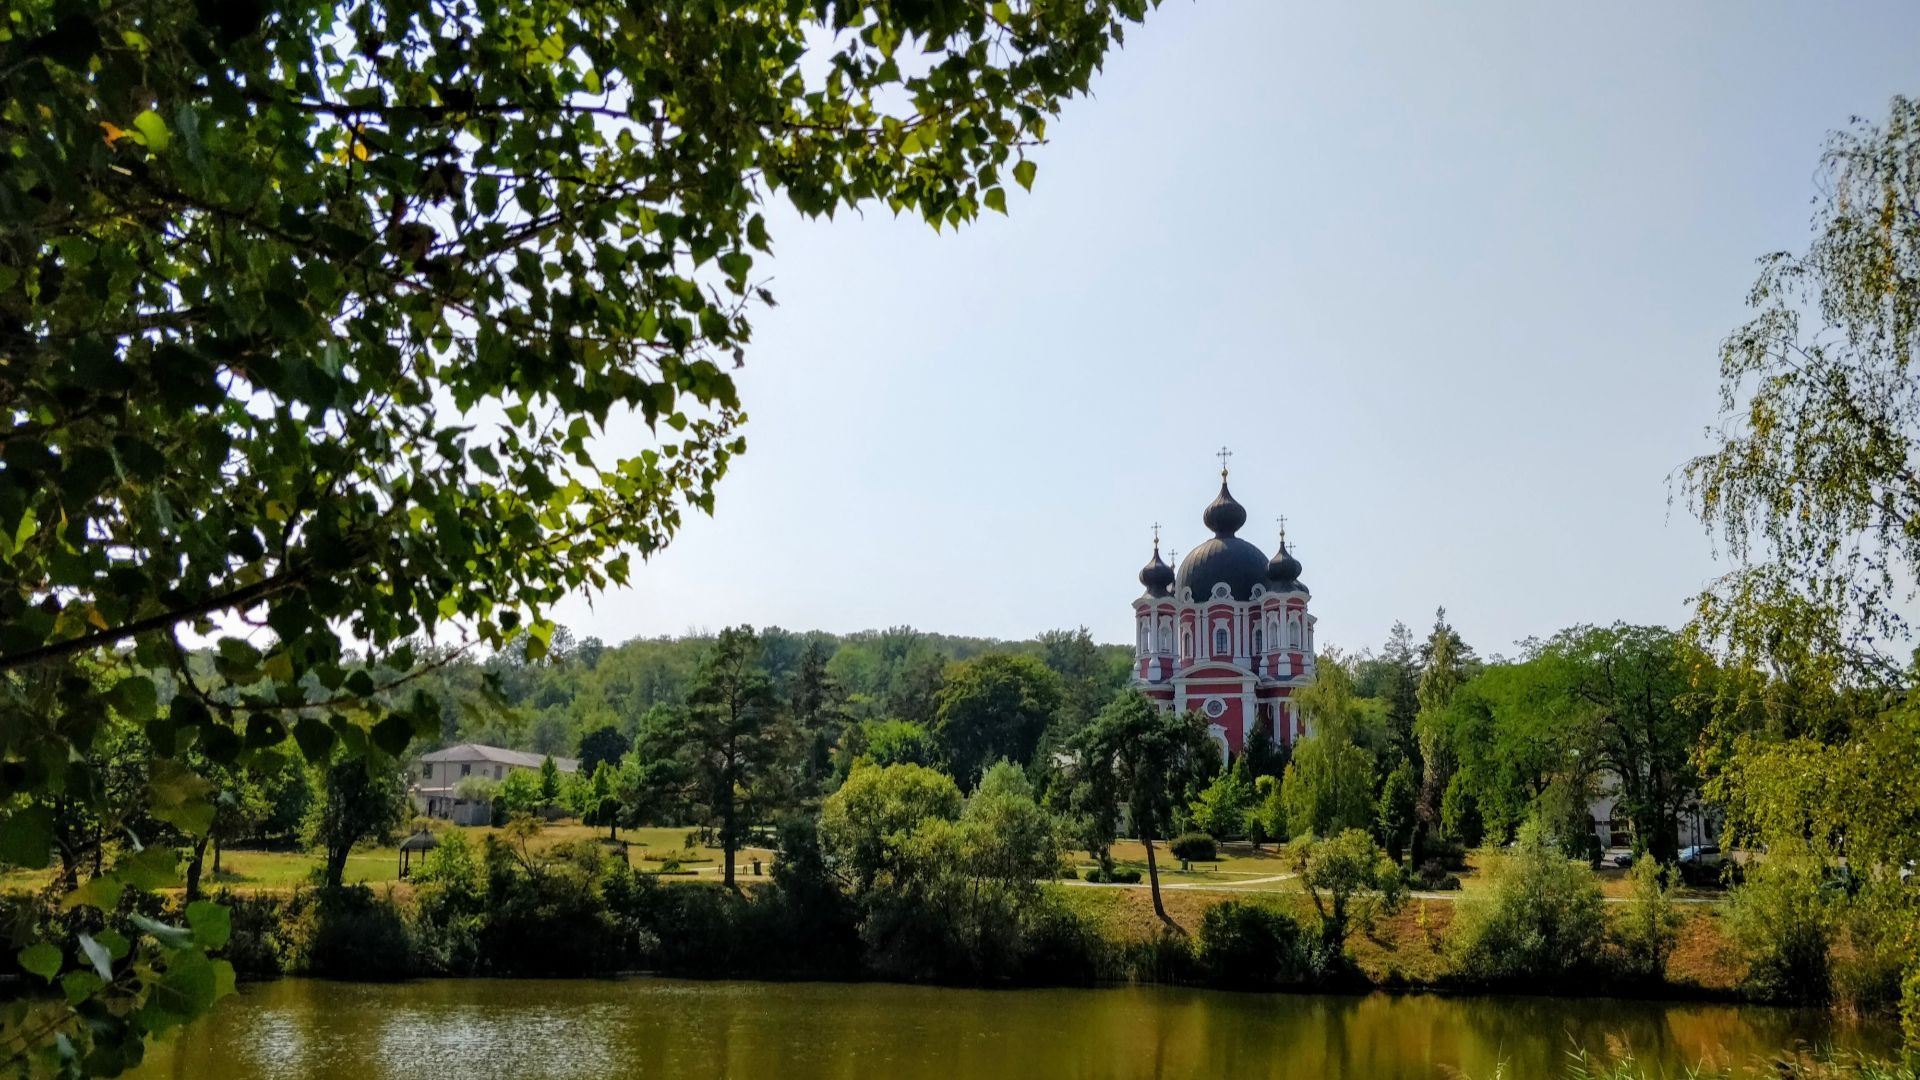 3 Days in Chisinau, Moldova: What to Do & See